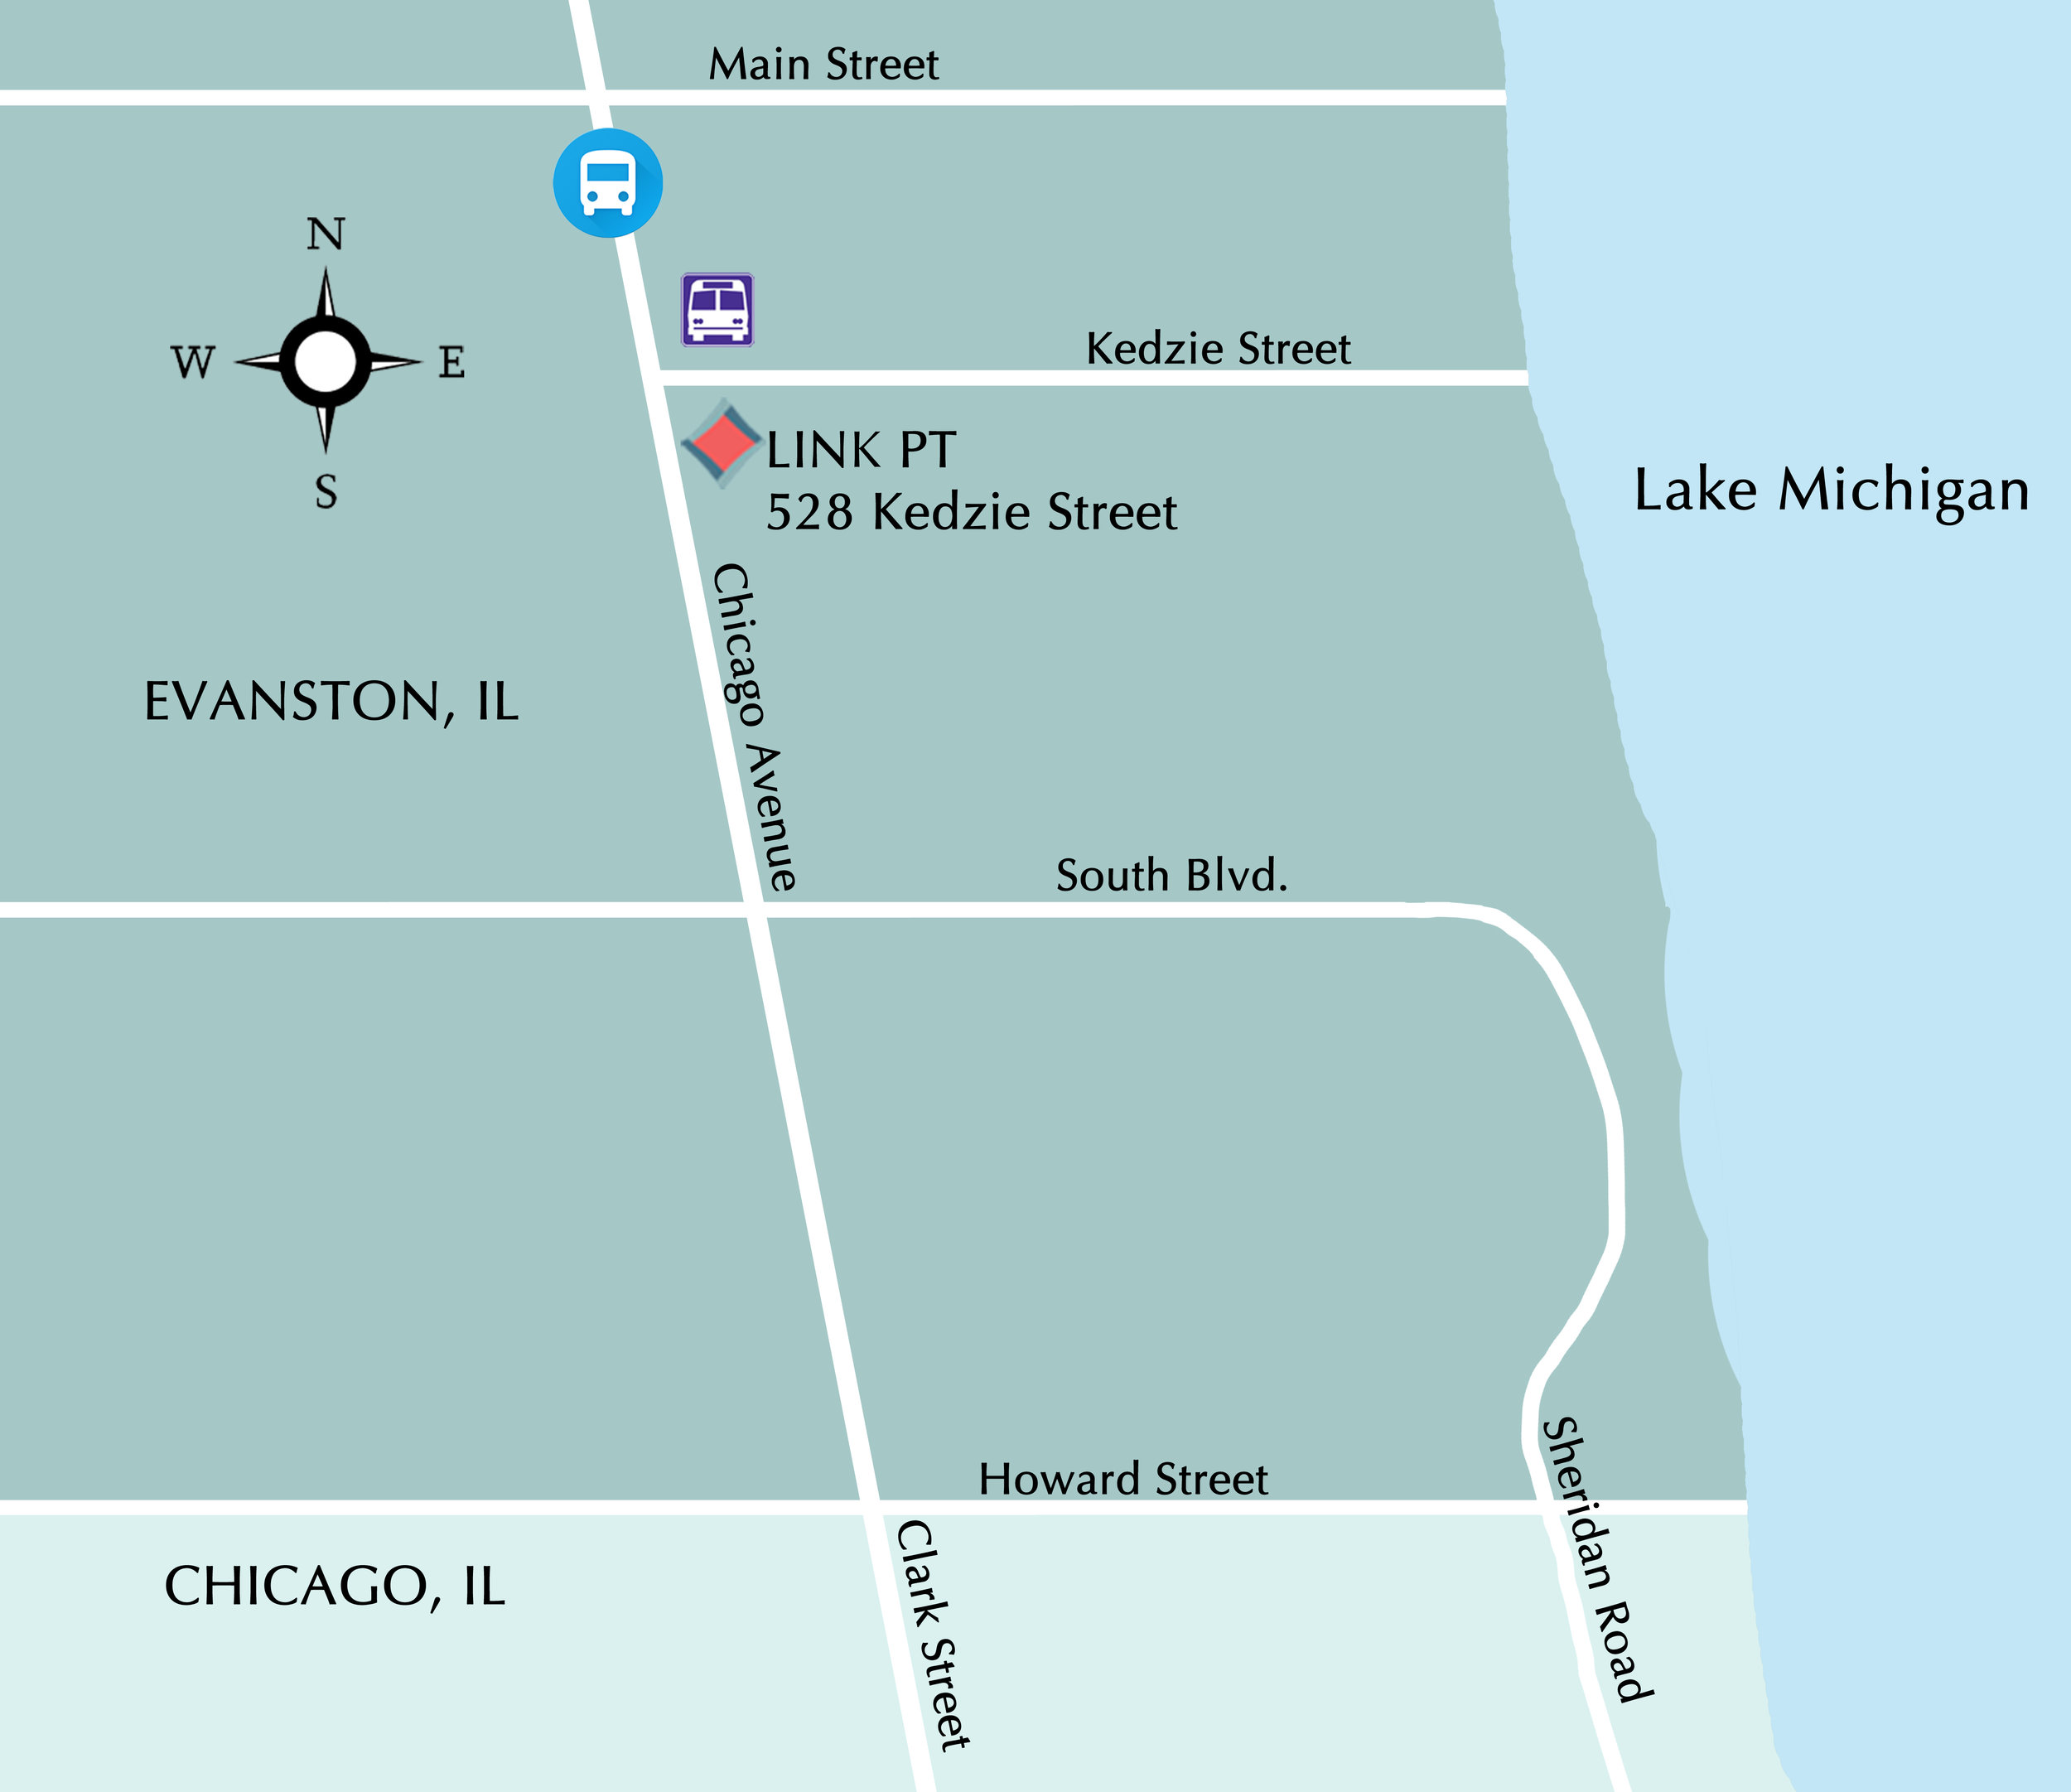 Our location - We are located in southeast Evanston, convenientlyclose to public transportation and street parking.Parking: Metered and non-metered street parking is available on Kedzie Street and the neighboring streets (Chicago Ave or Hinman Ave).CTA: Purple line - Main StreetMetra: Union Pacific-North (UP-N) Line - Main StreetNorthwestern Intercampus Bus: Chicago Avenue/Kedzie St. stop